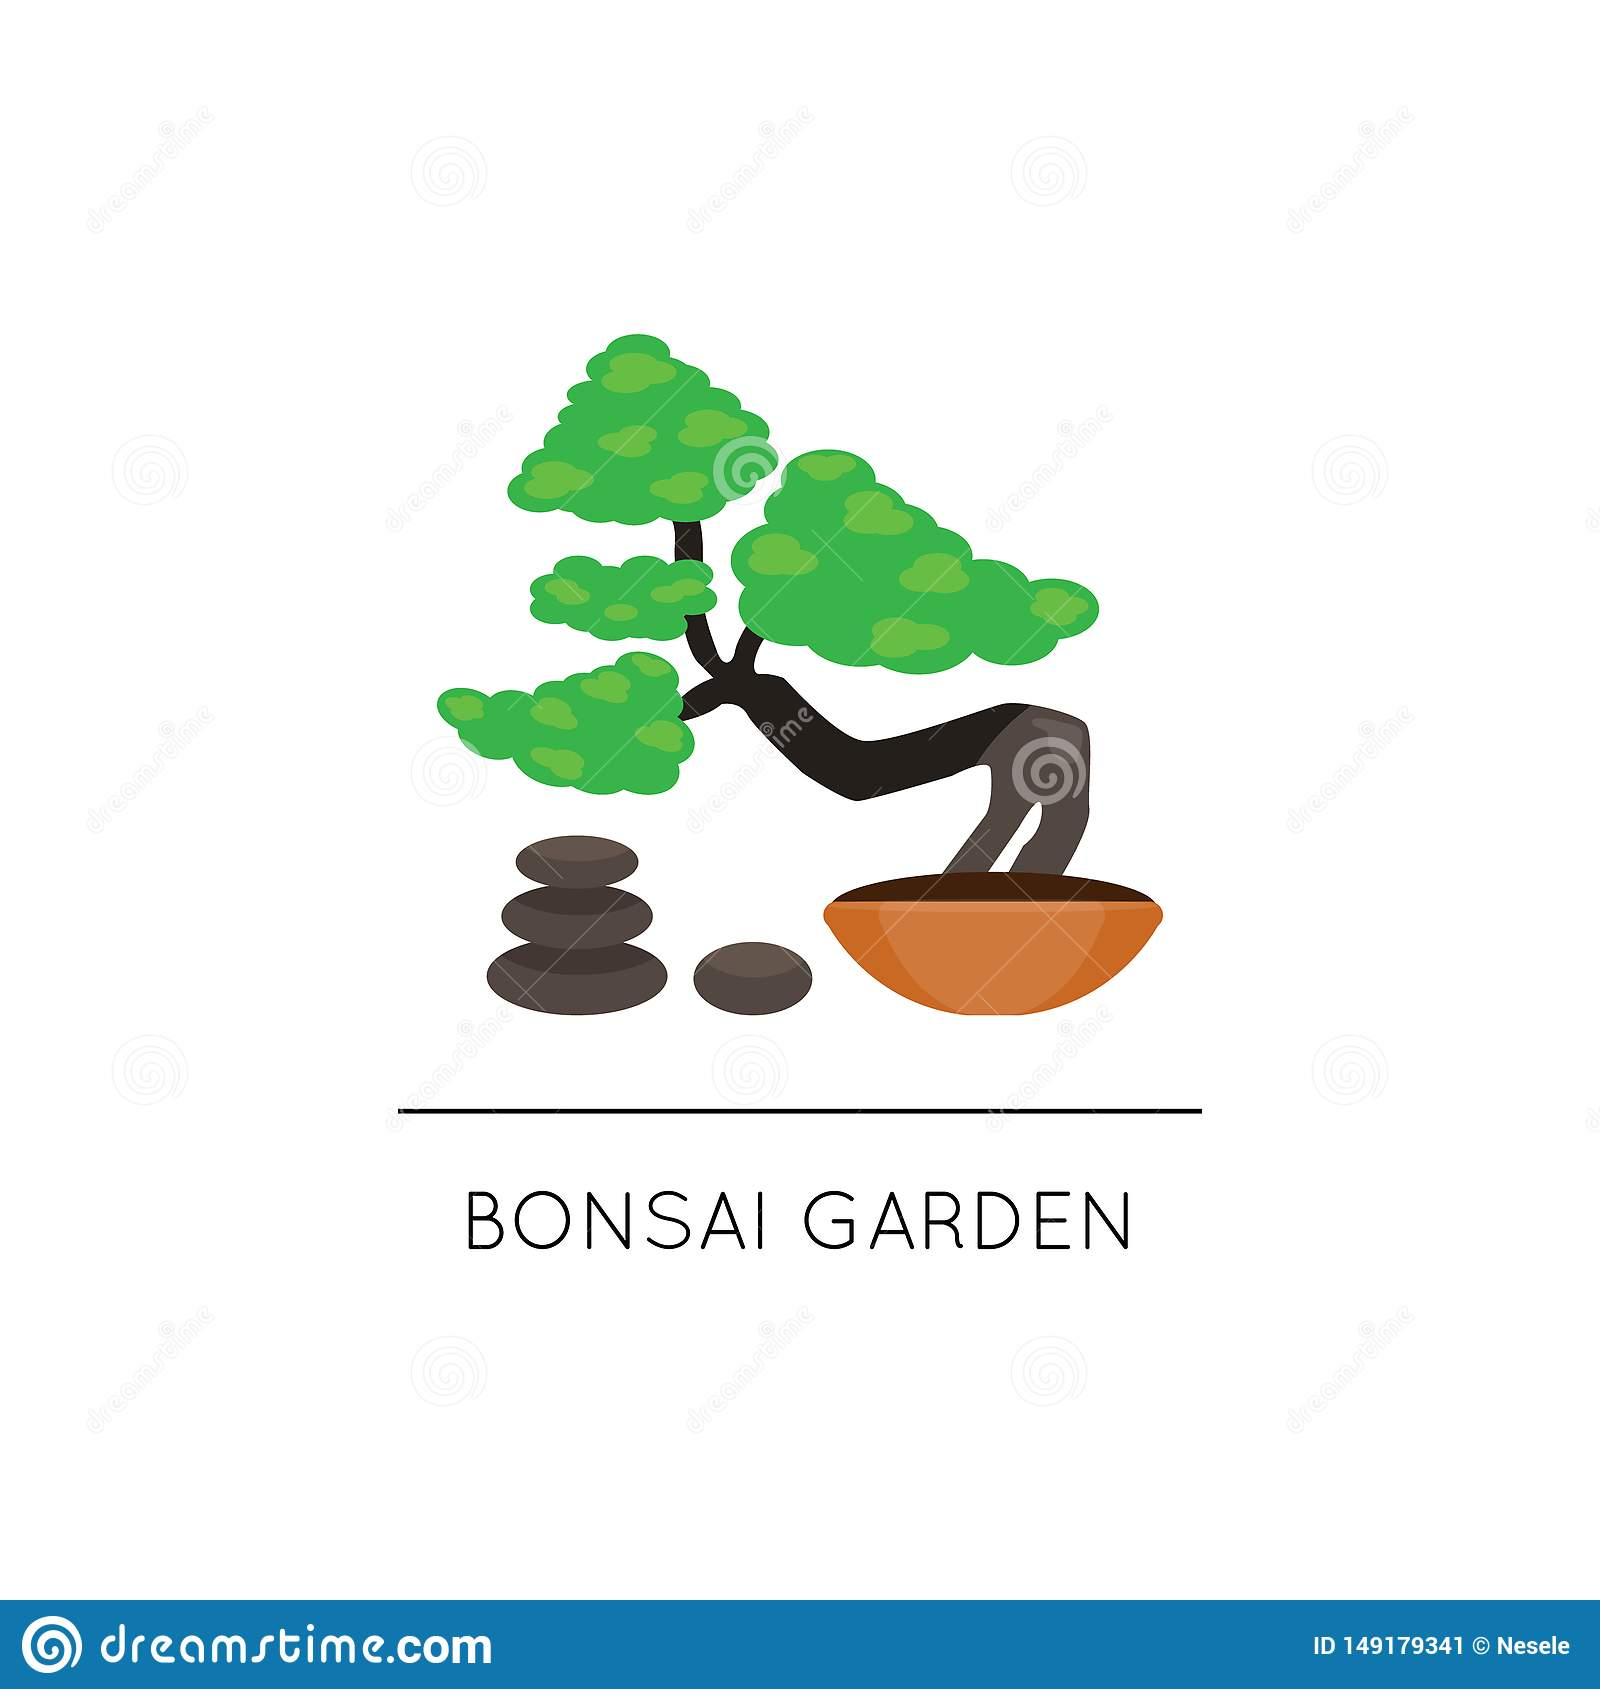 Bonsai Logo Illustrations Vectors